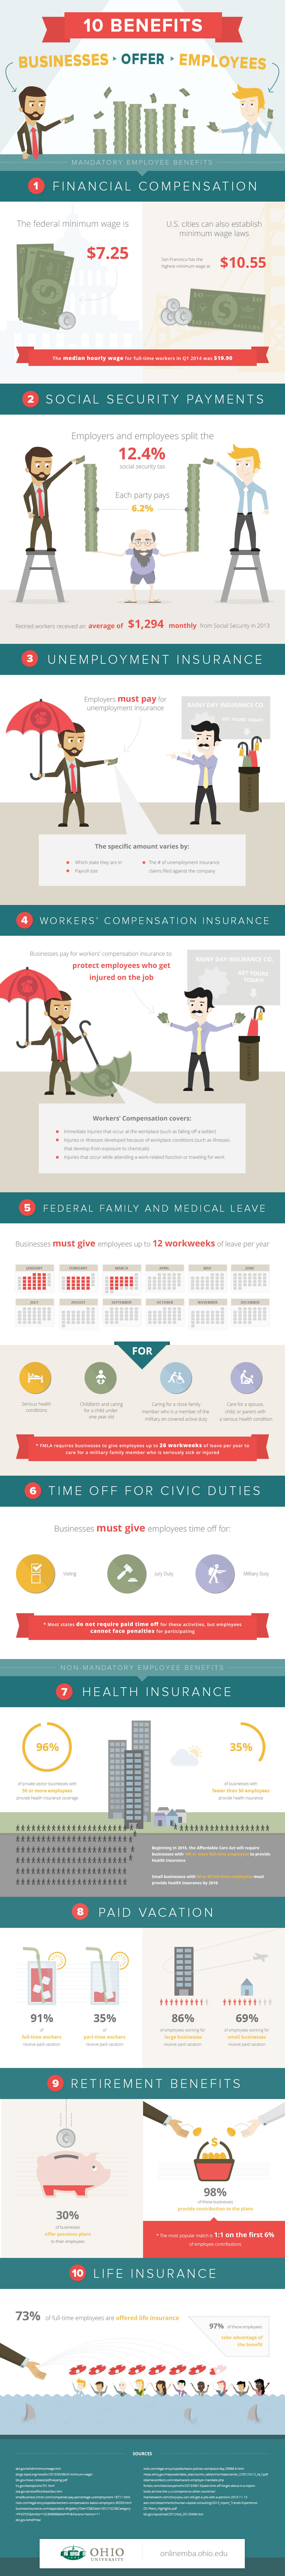 Infographic: 10 Benefits: Business, Offer, Employees #infographic